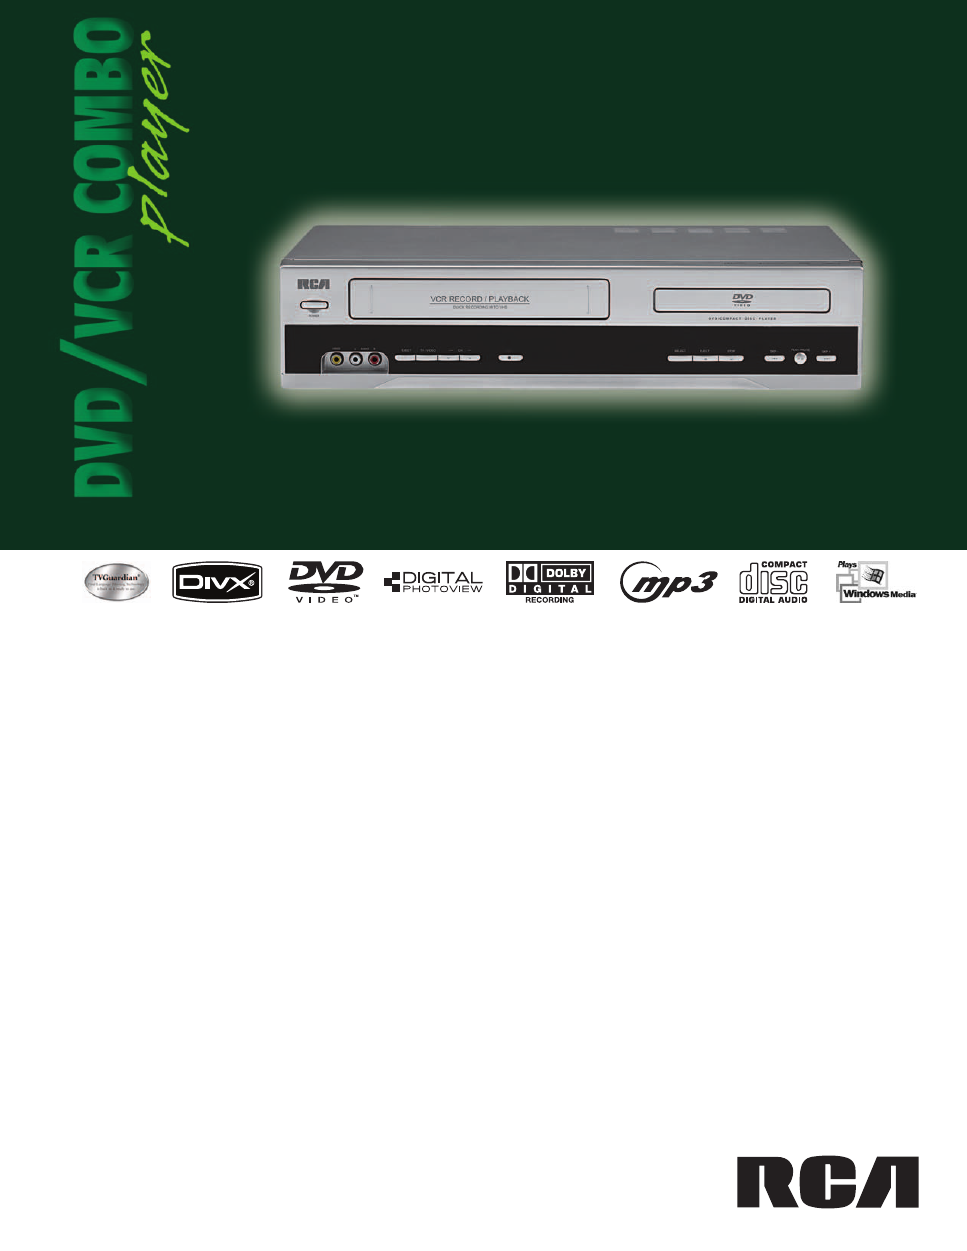 RCA DRC6355N User's Manual - Free PDF Download (2 Pages)